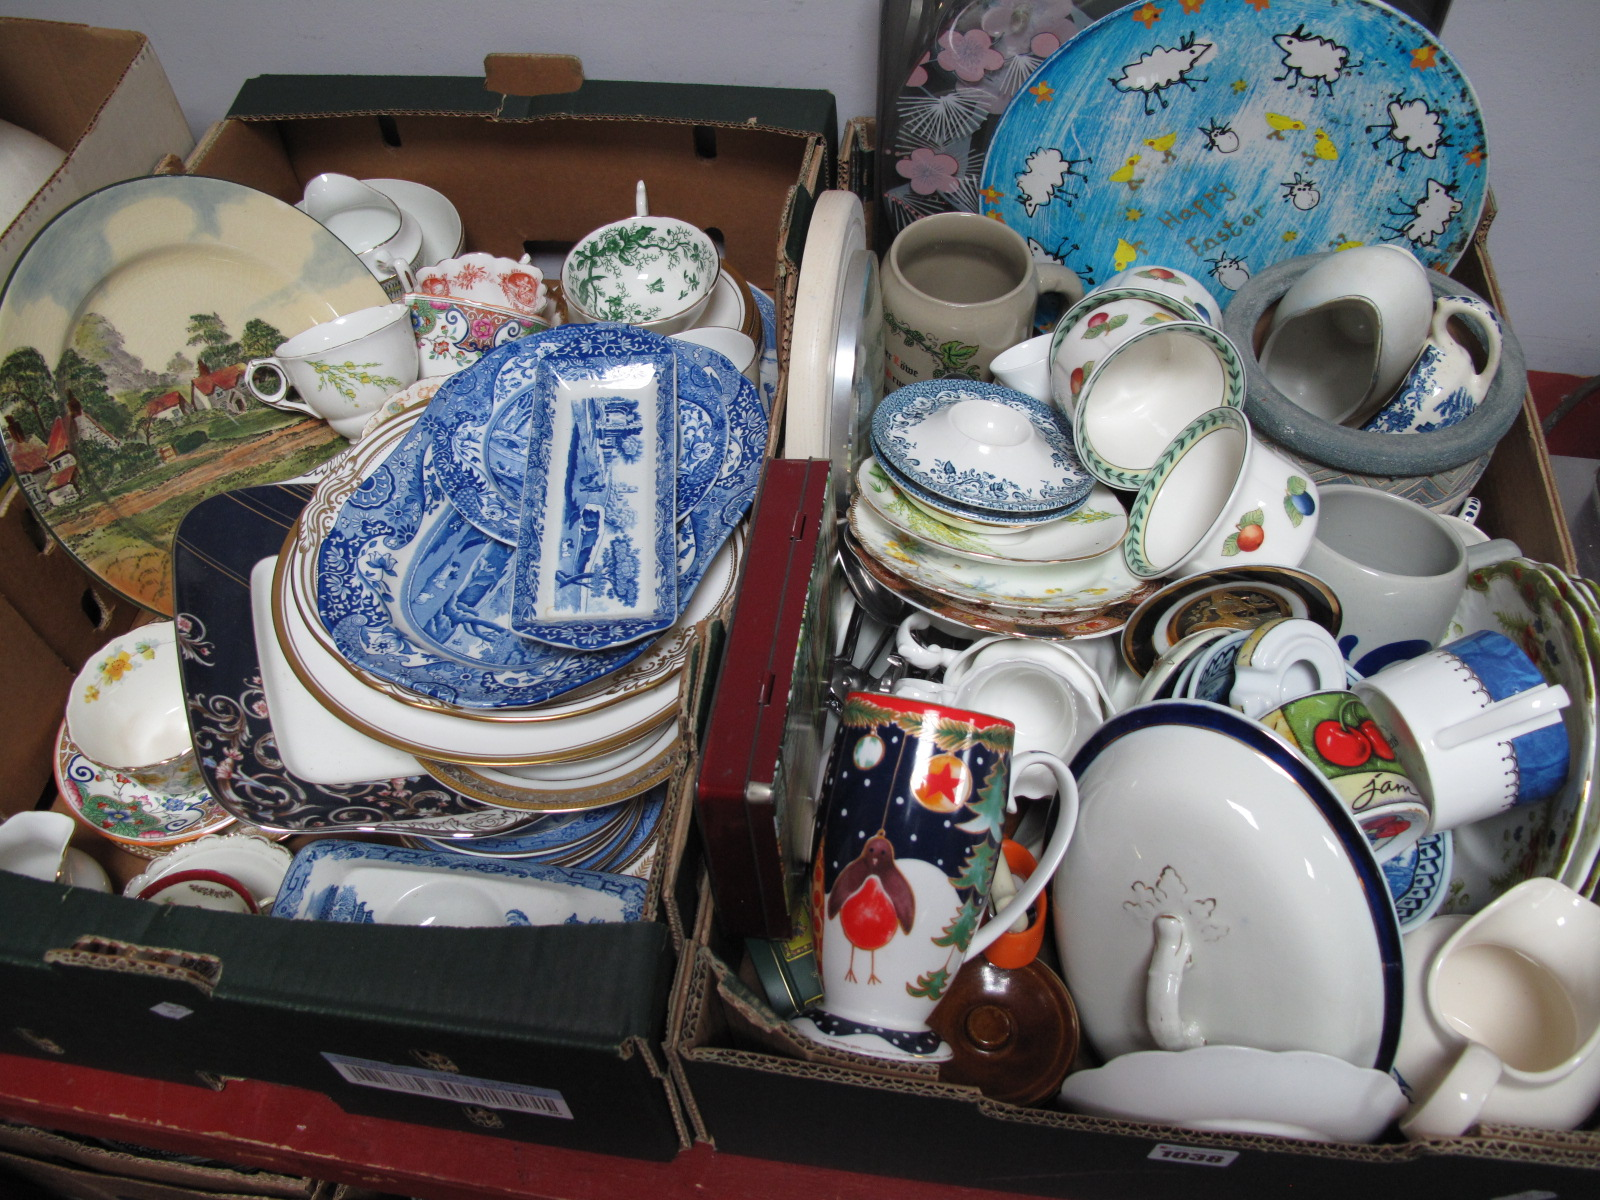 Lot 1038 - Spode, Doulton, Villeroy & Boch and Other Ceramics, clock, etc:- Two Boxes